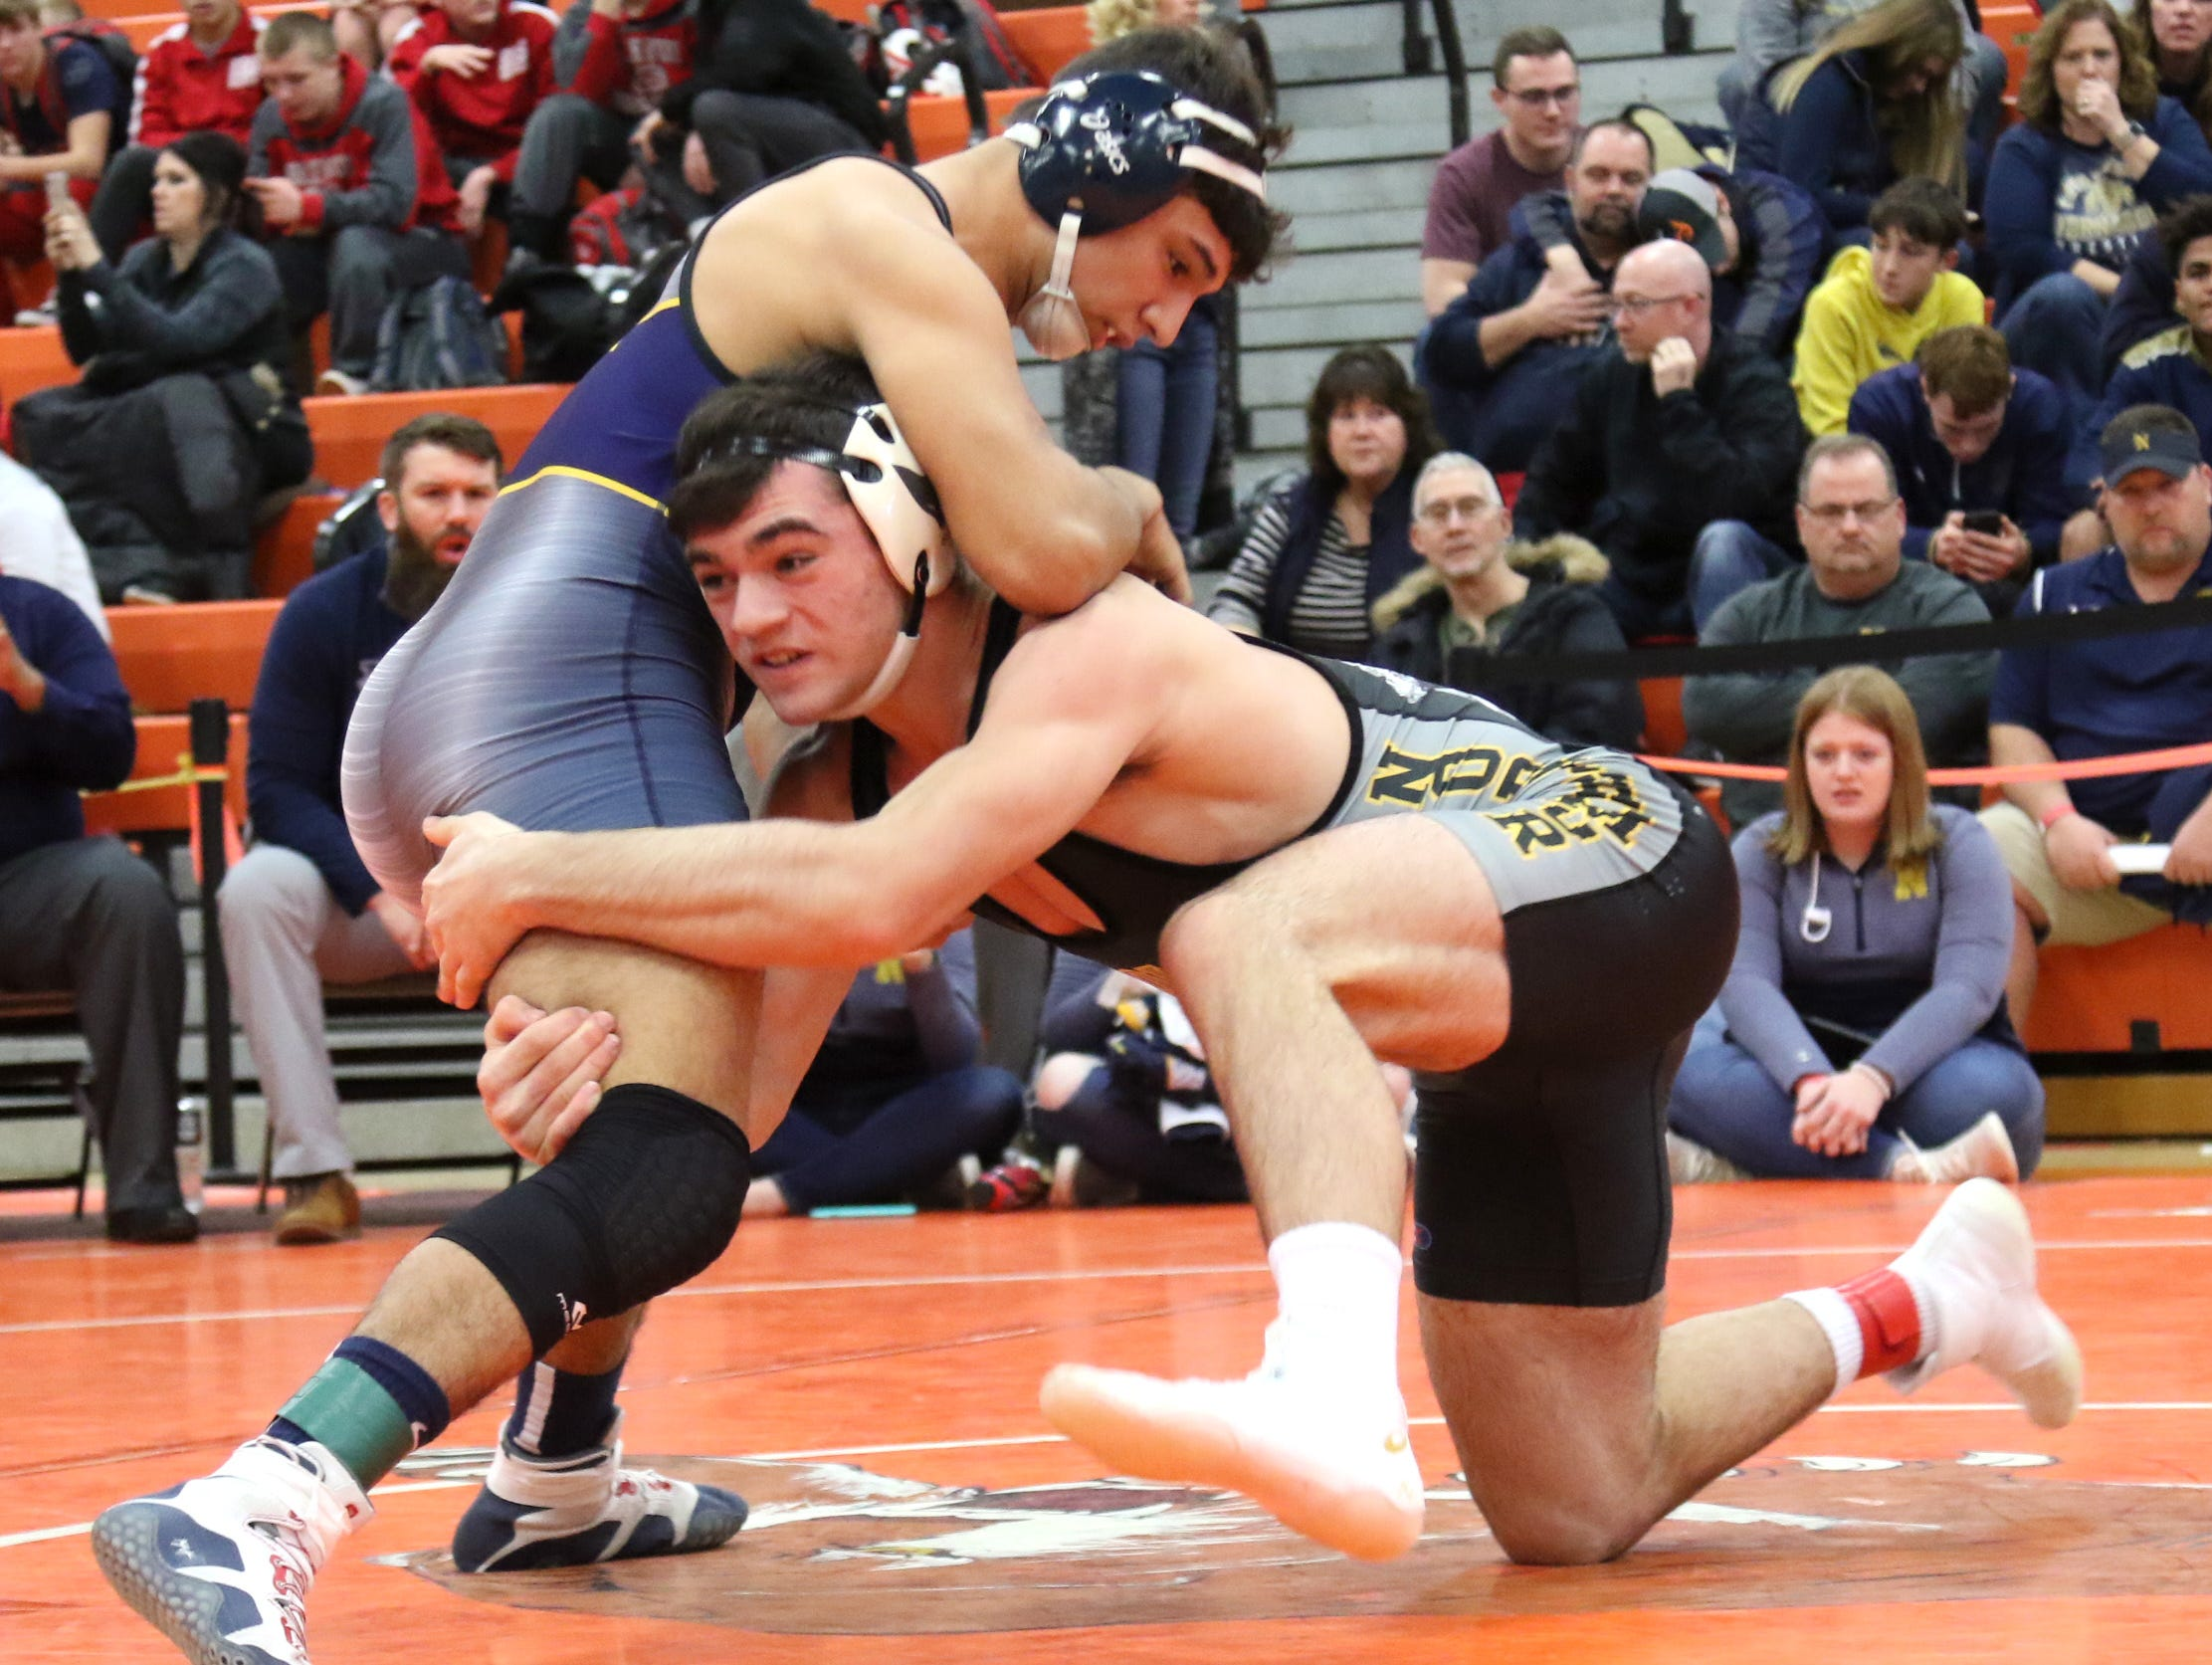 Northmor's Conor Becker spars with Norwalk's Ethan Hernandez during the final matches at the JC Gorman Wrestling Tournament on Saturday.